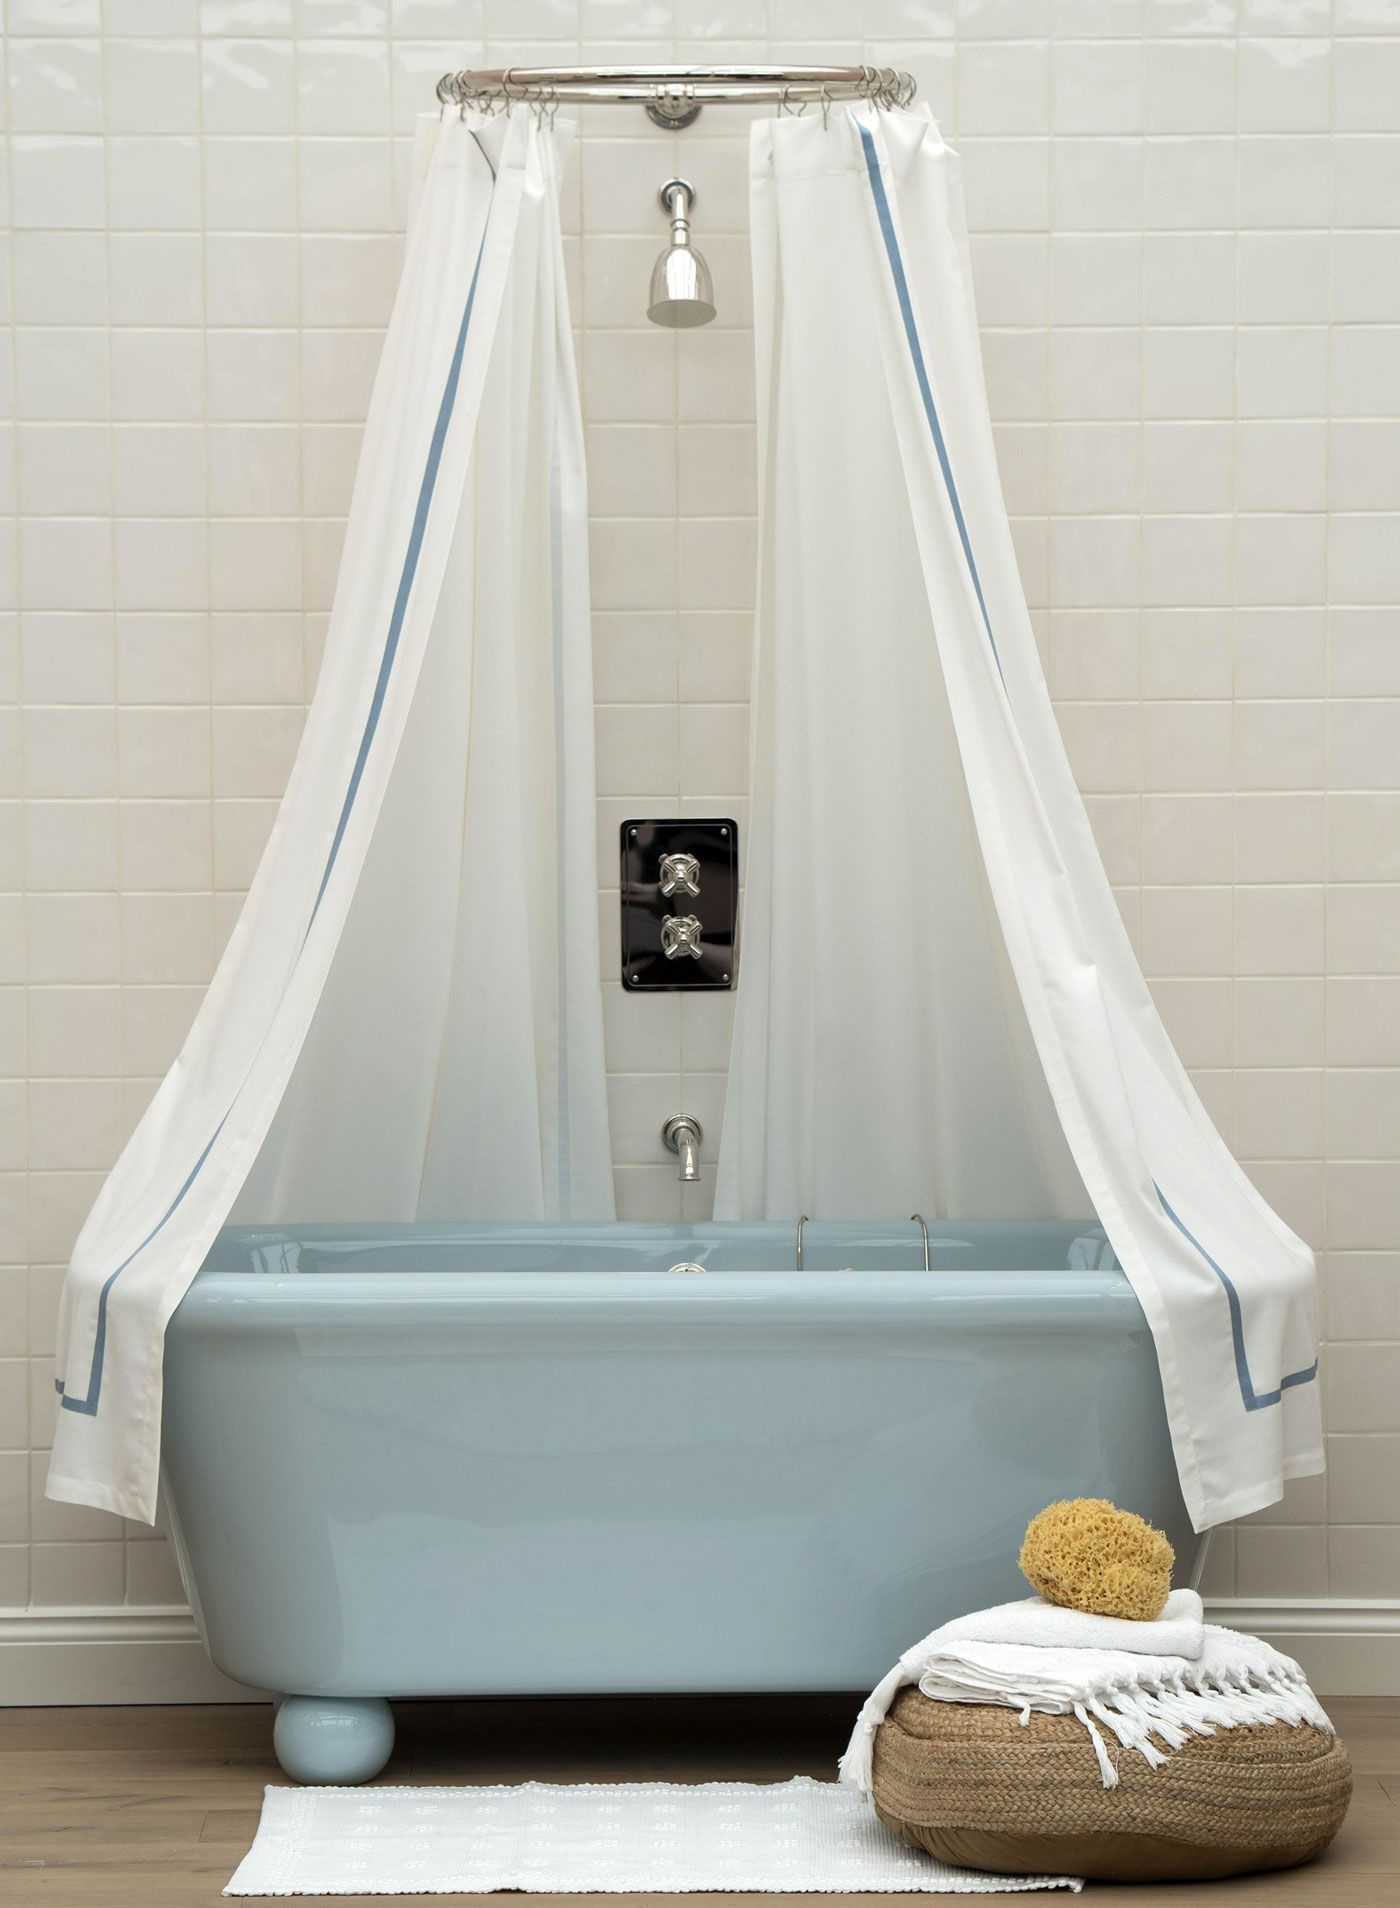 The Most Extraordinary Bathtubs in the World | Vintage tub, Tubs and ...